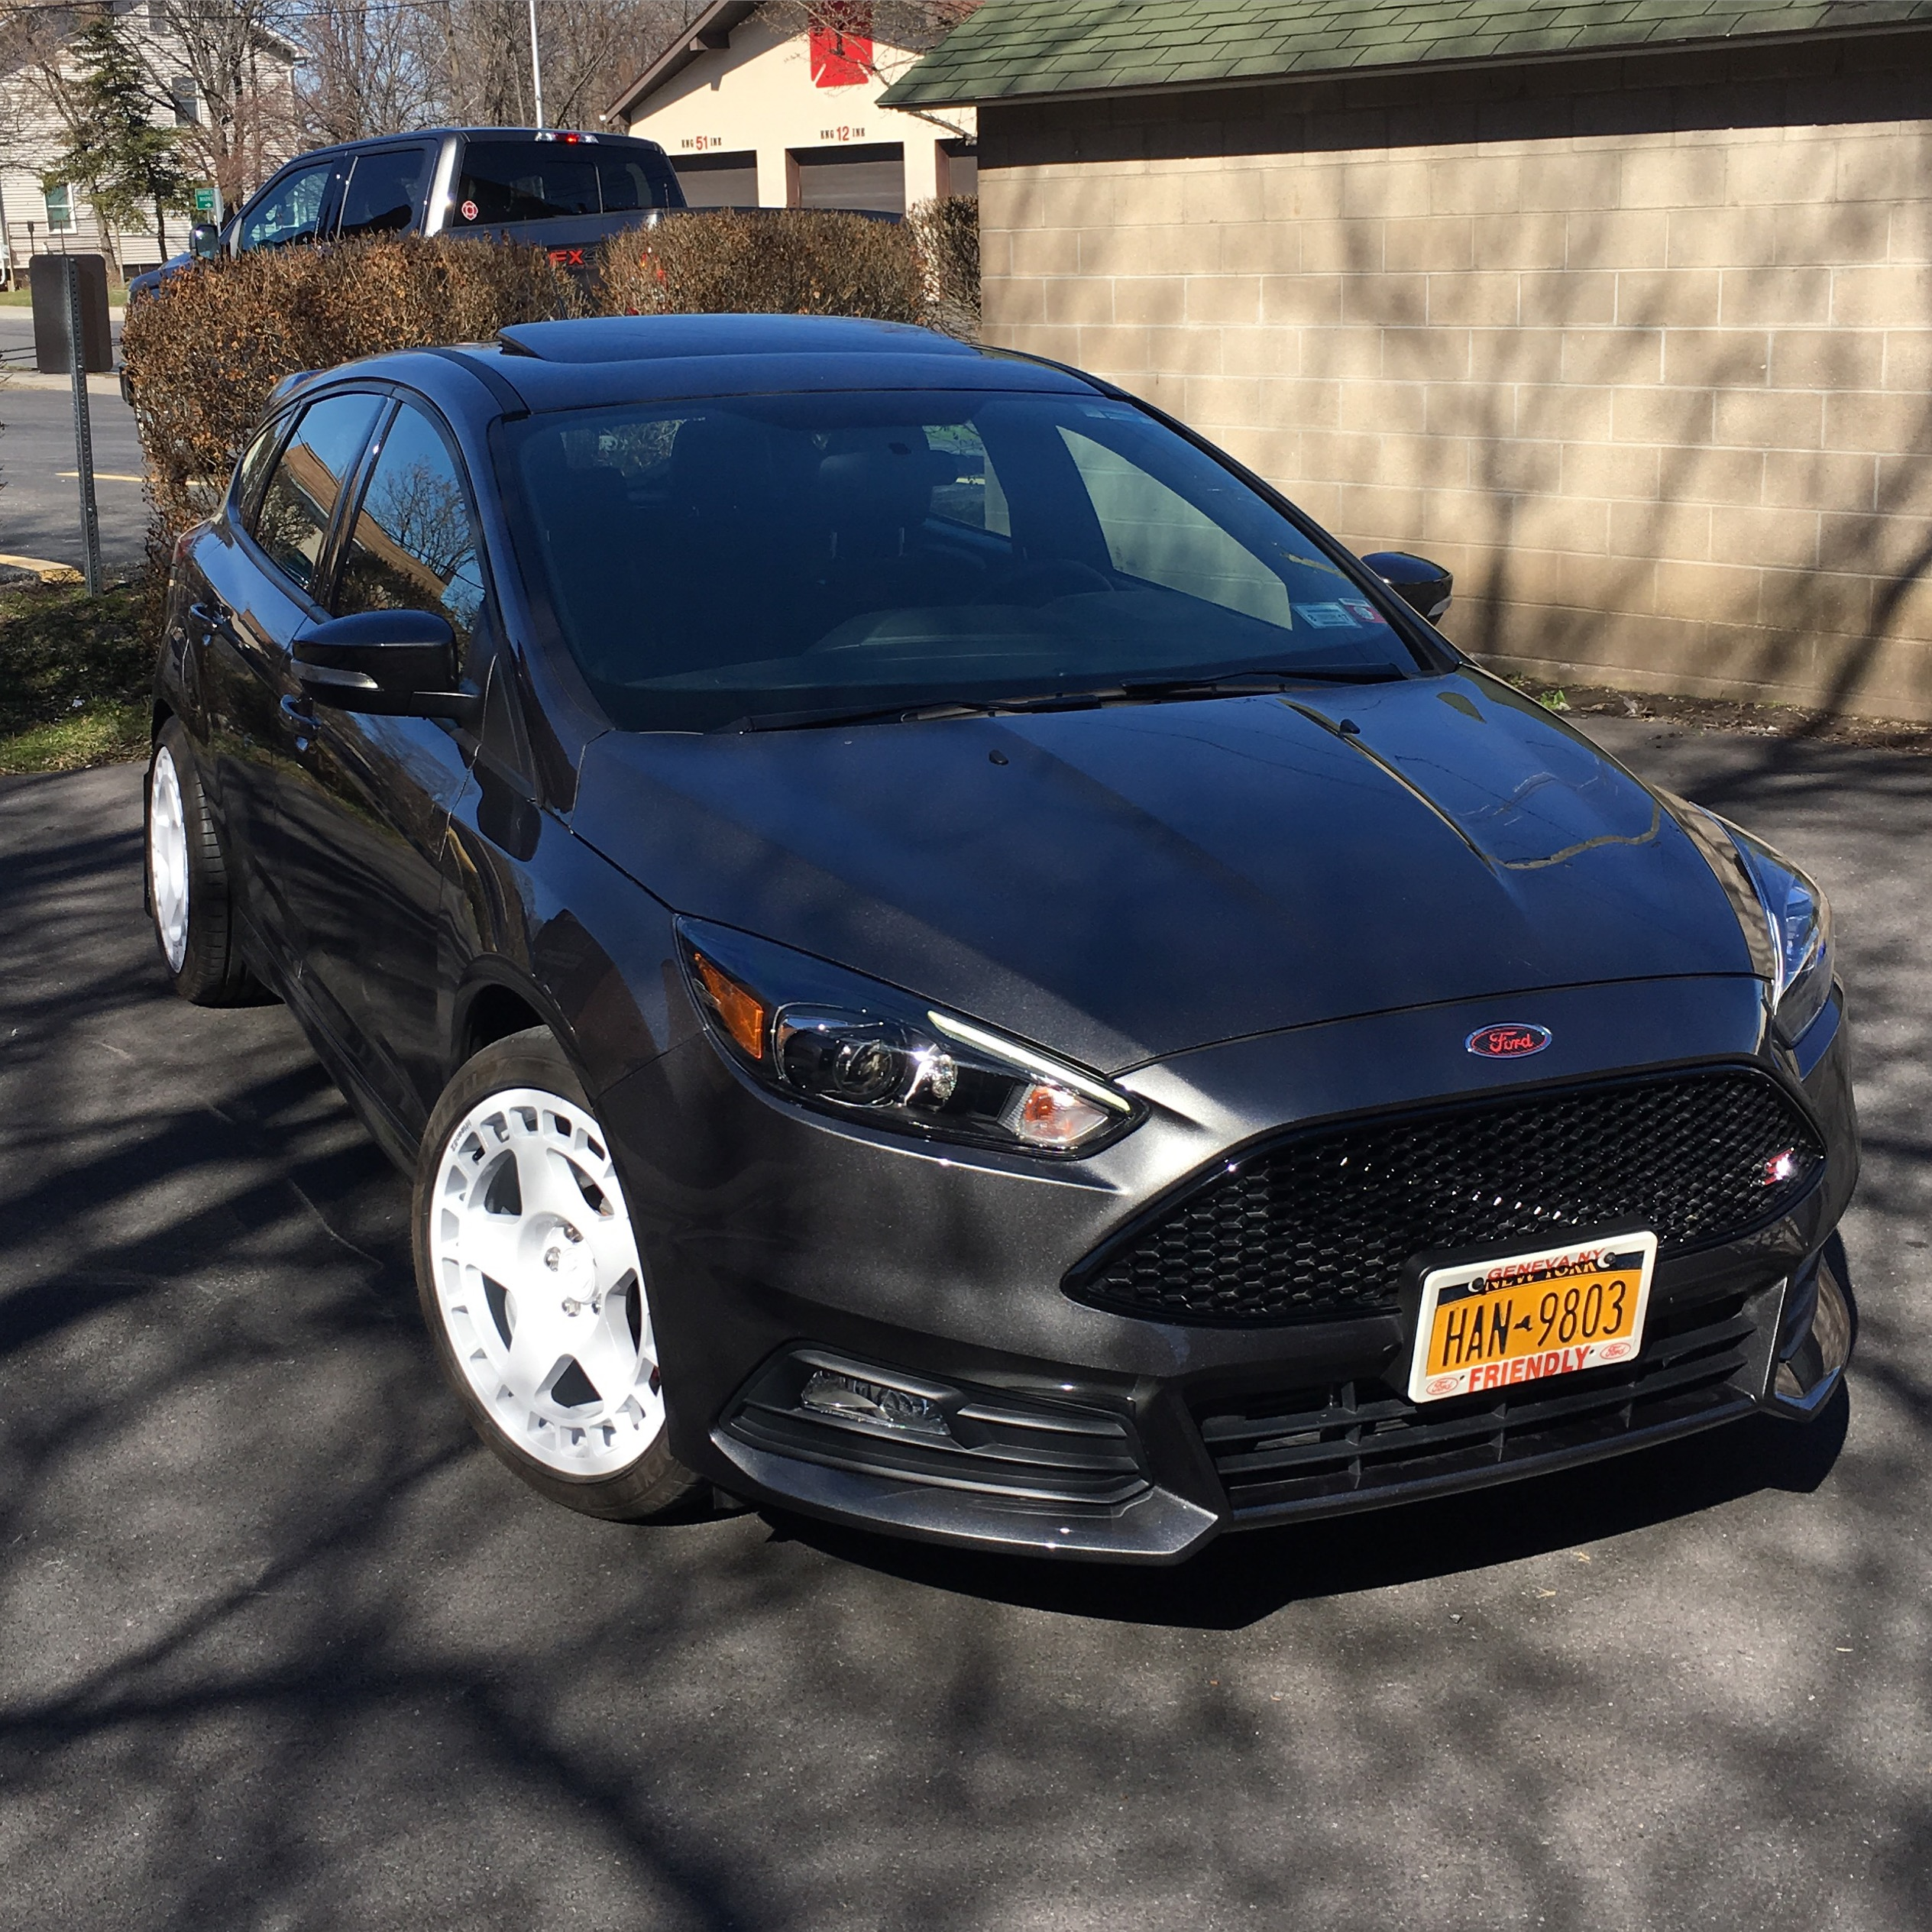 Focus St Cobb Cold Air Intake >> Official Focus ST Wheel and Tire Fitment Picture Thread - Add your setup in here - Page 35